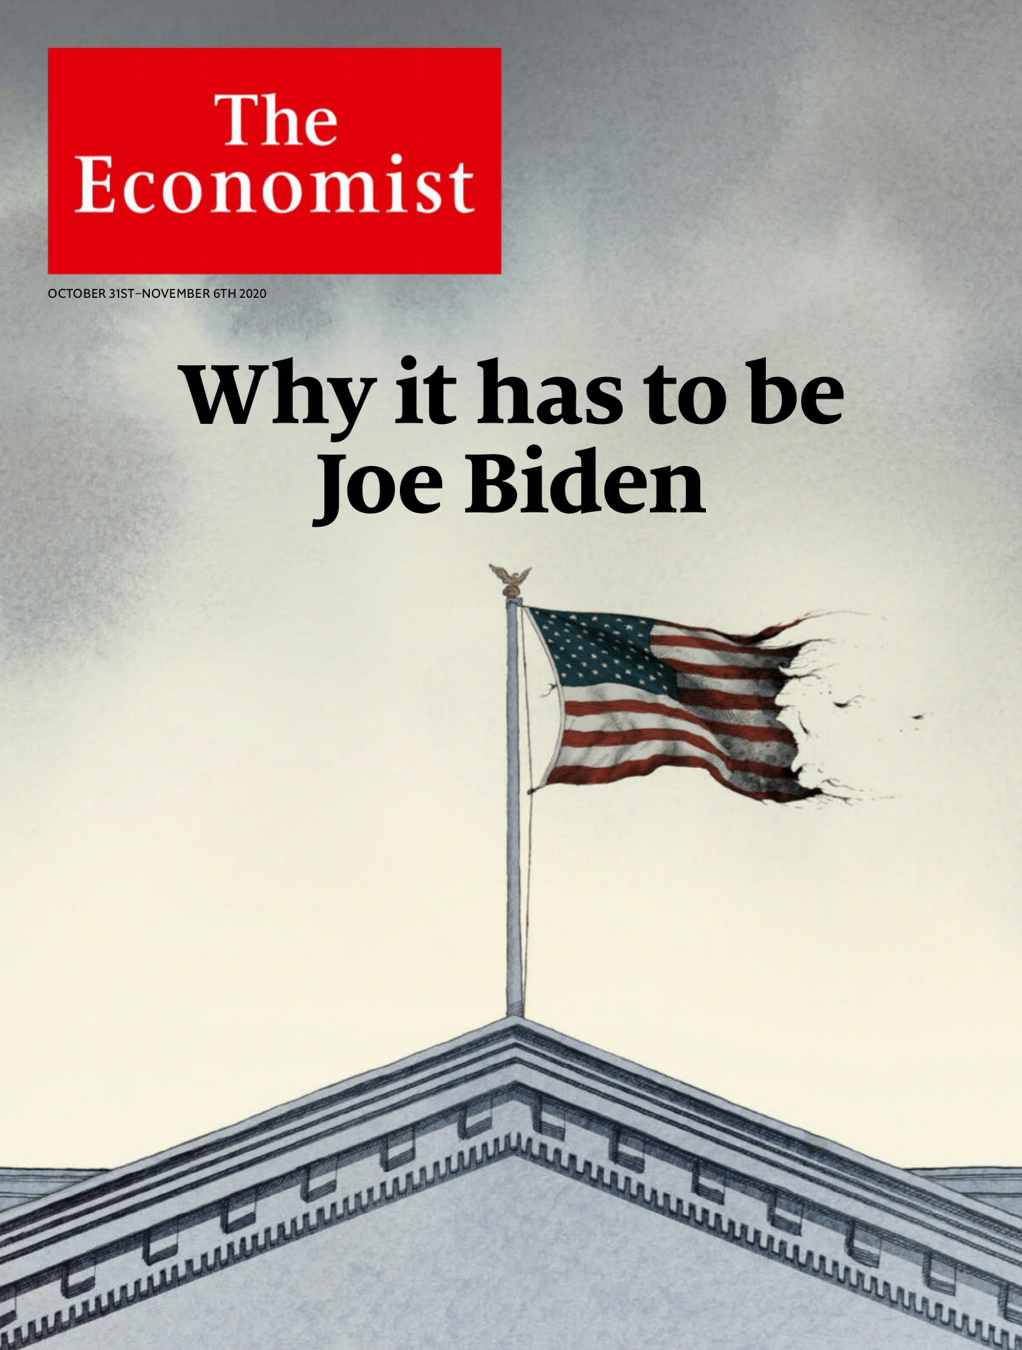 The Econoist Cover about US 2020 election